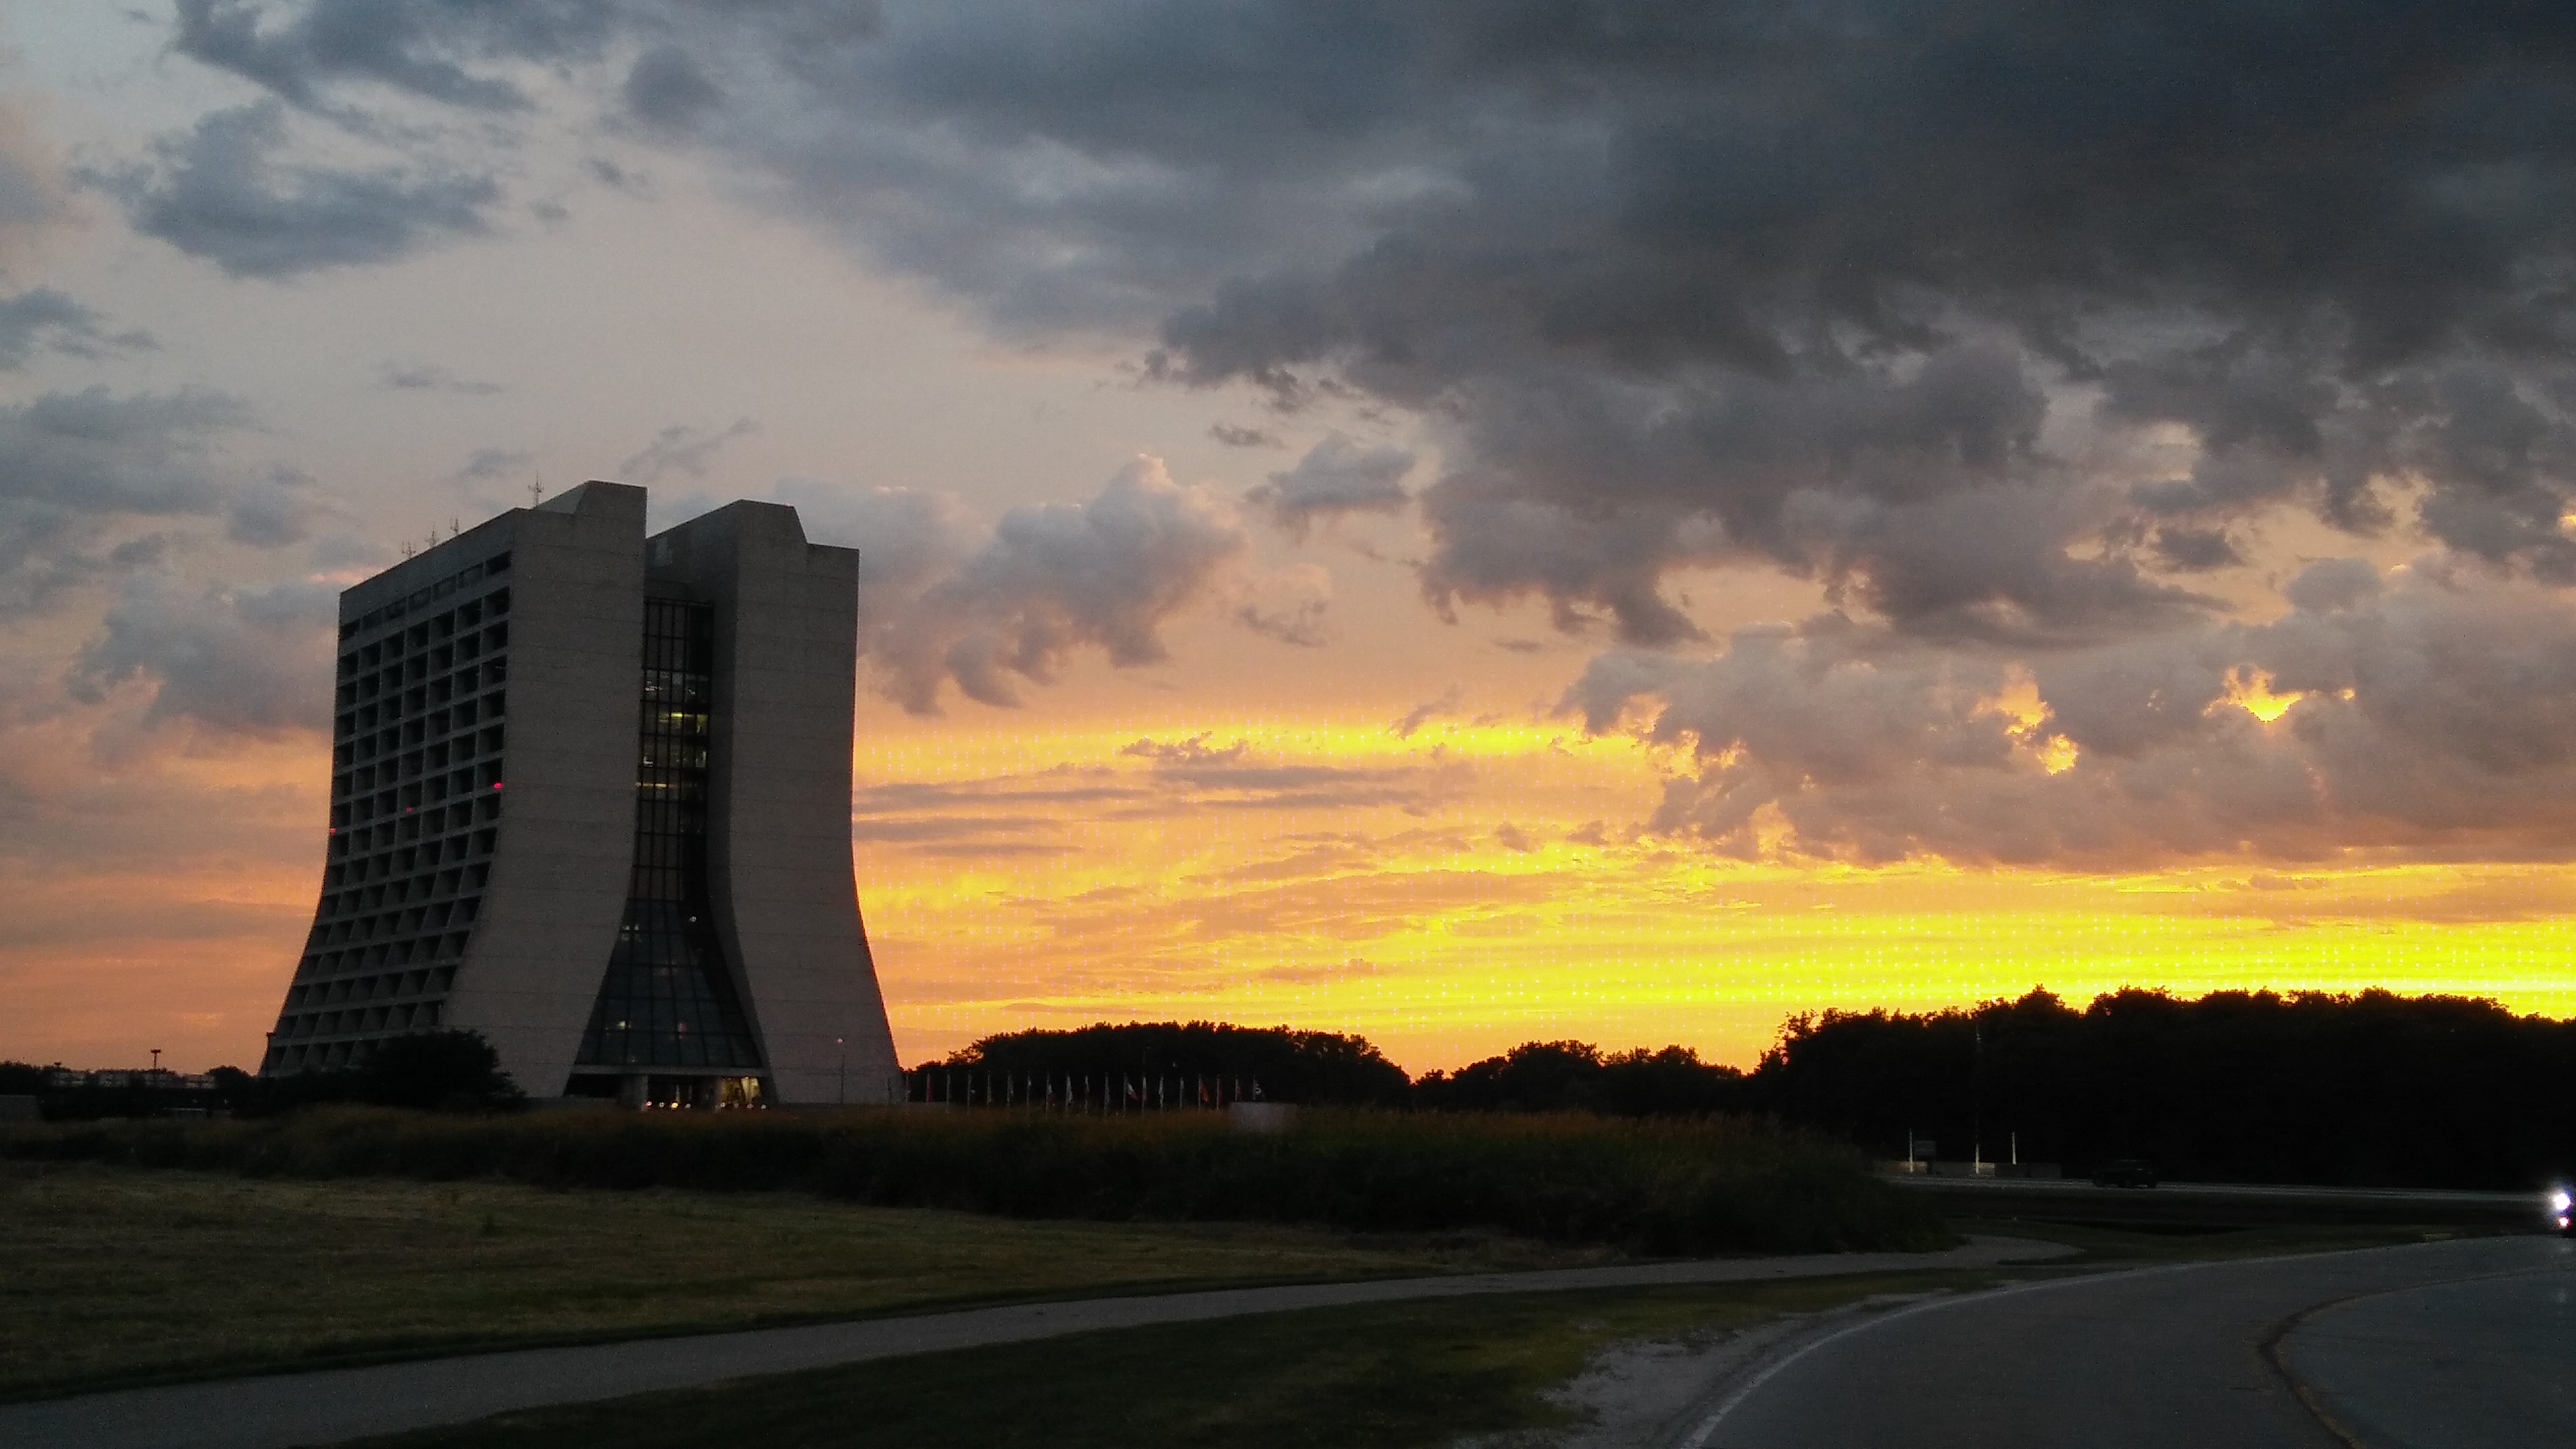 (1/4) Golden July sky covers the Fermilab site. nature, landscape, building, Wilson Hall, cloud, sky, sunset Photo: Piyush Jain